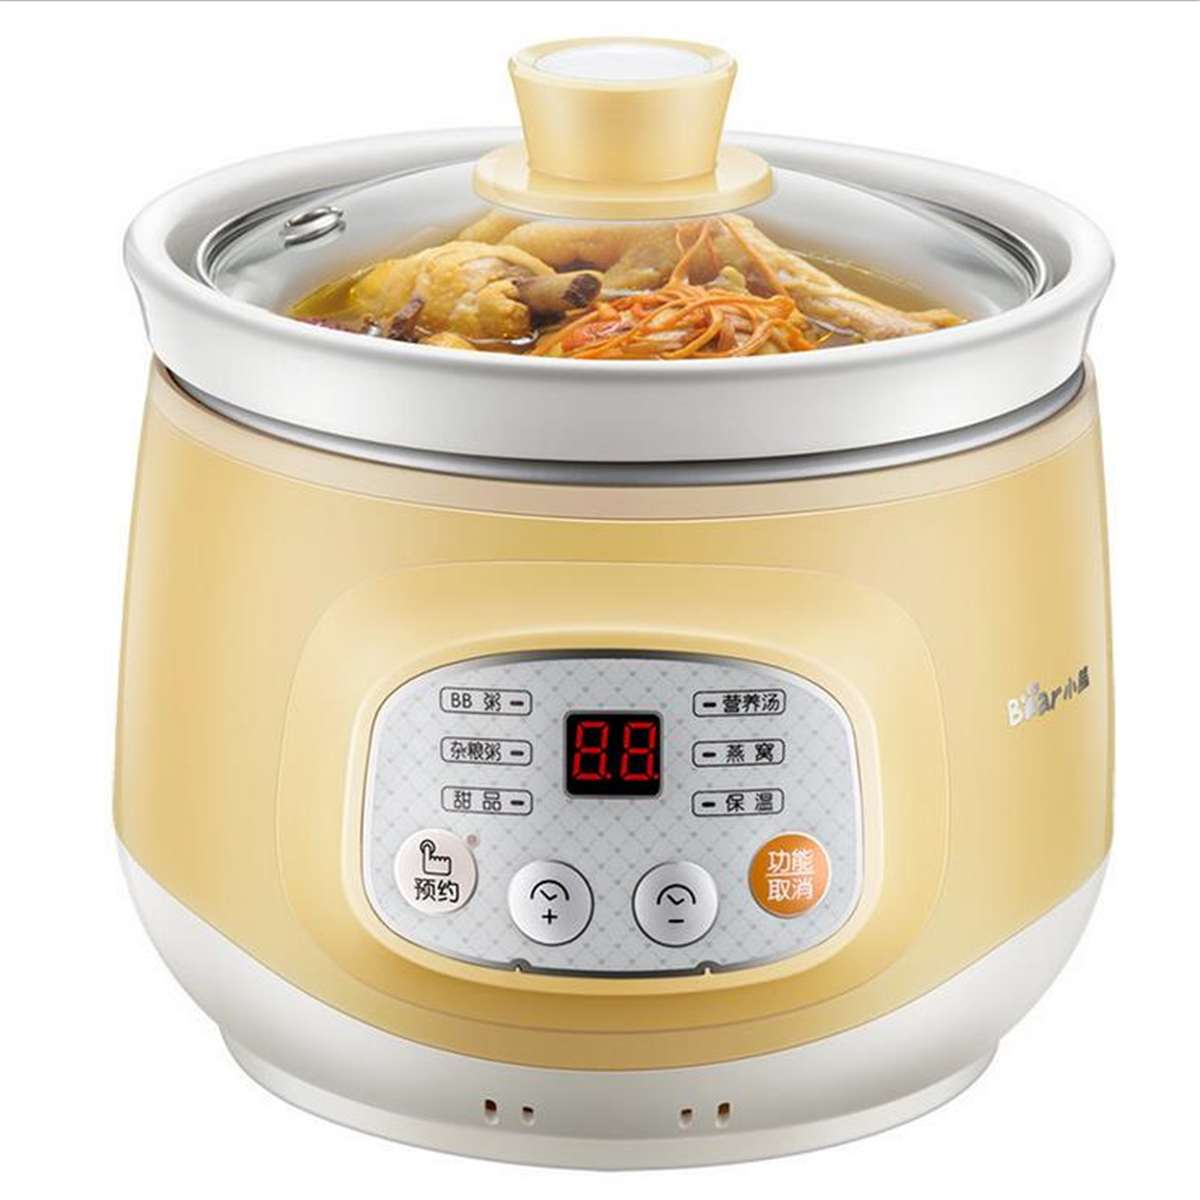 100W Electric Slow Cooker Ceramic Mini Fully Automatic Baby Soup Pot Congee Bird's Nest Stew Pot Multi-function Safe Slow Cooker